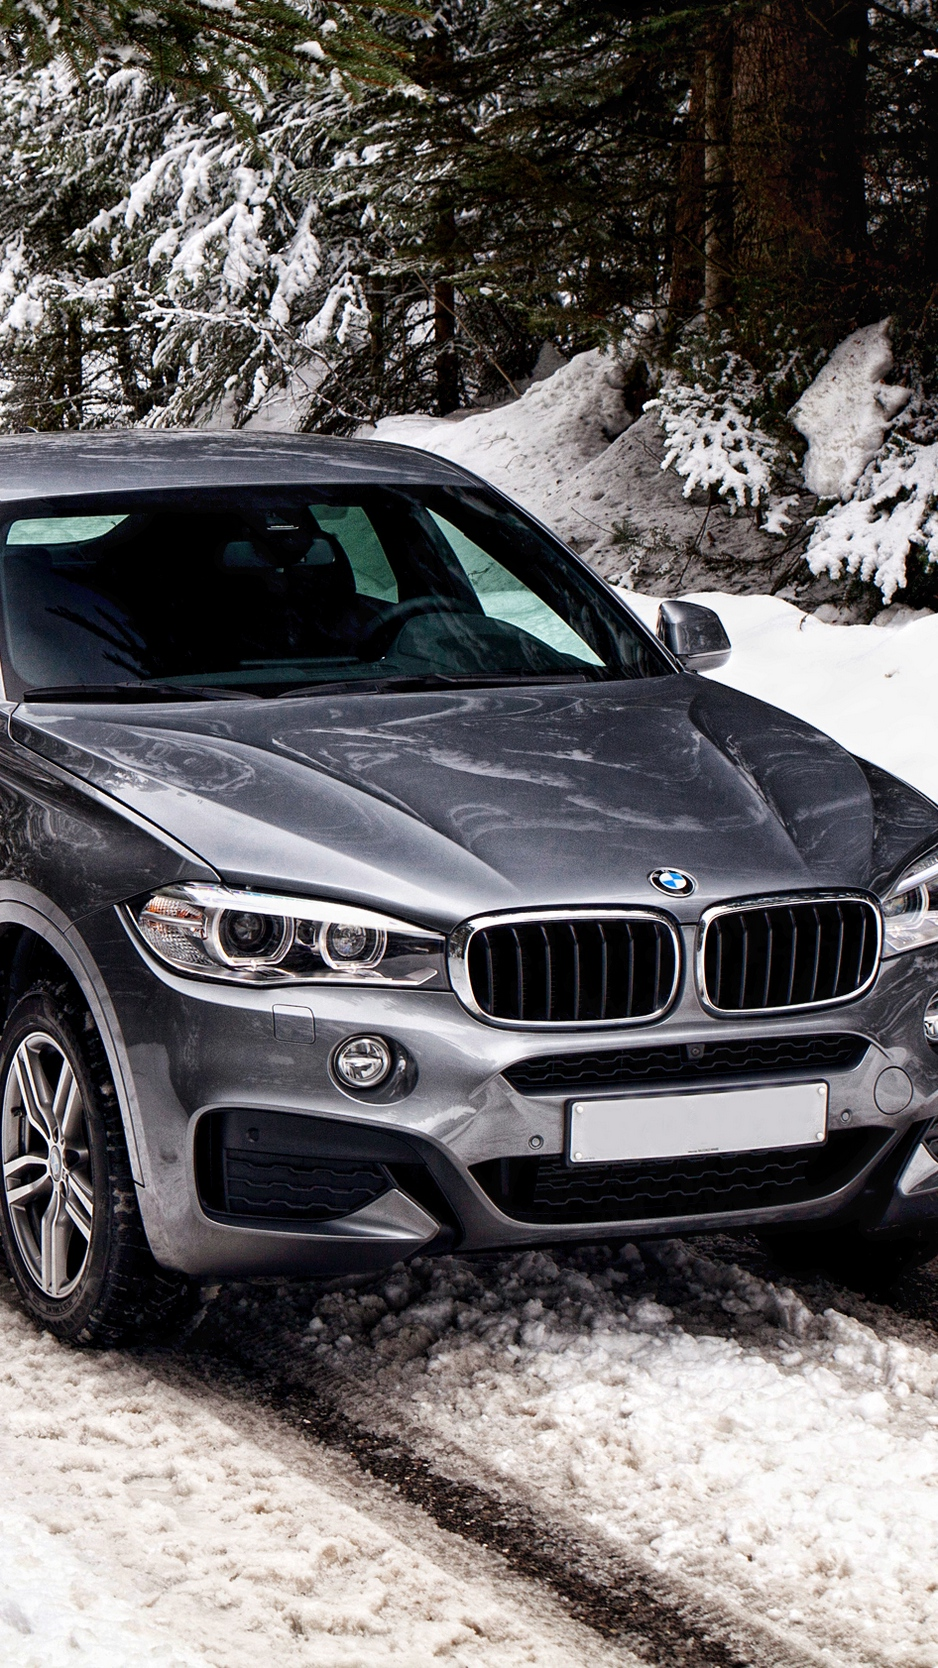 938x1668 - BMW X6 Wallpapers 26